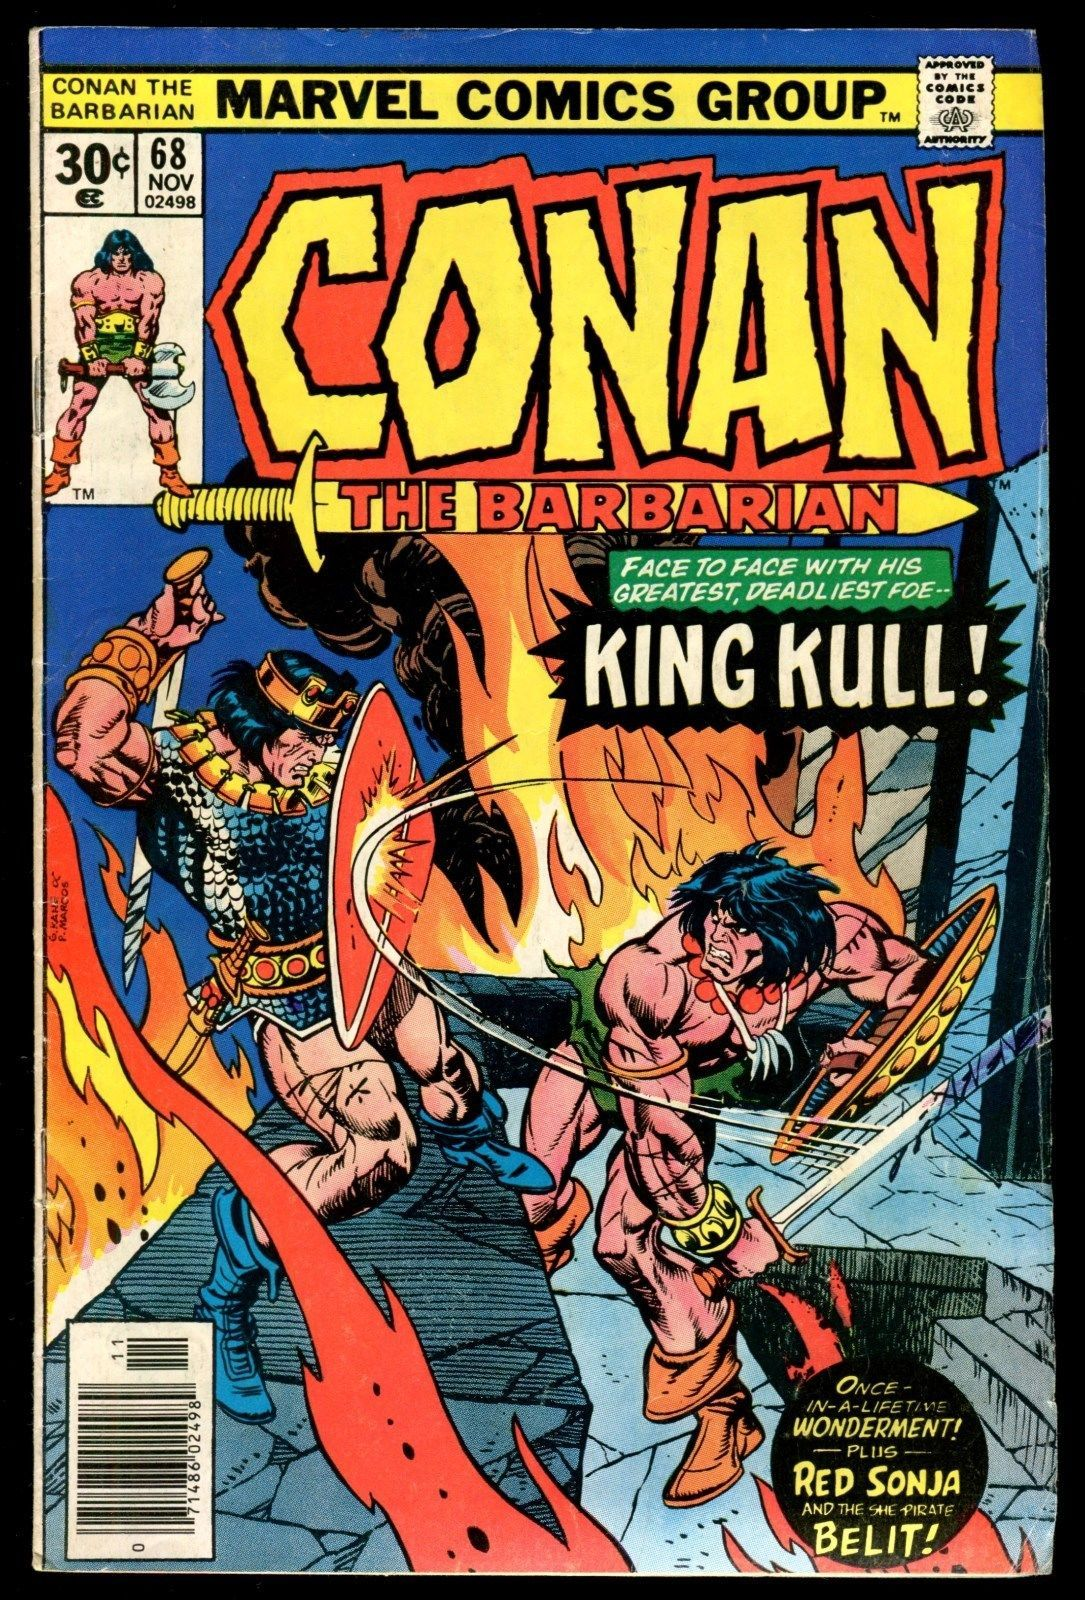 Marvel Feature 7 Red Sonja vs Conan the Barbarian 68 vs King Kull Comic Set Lot